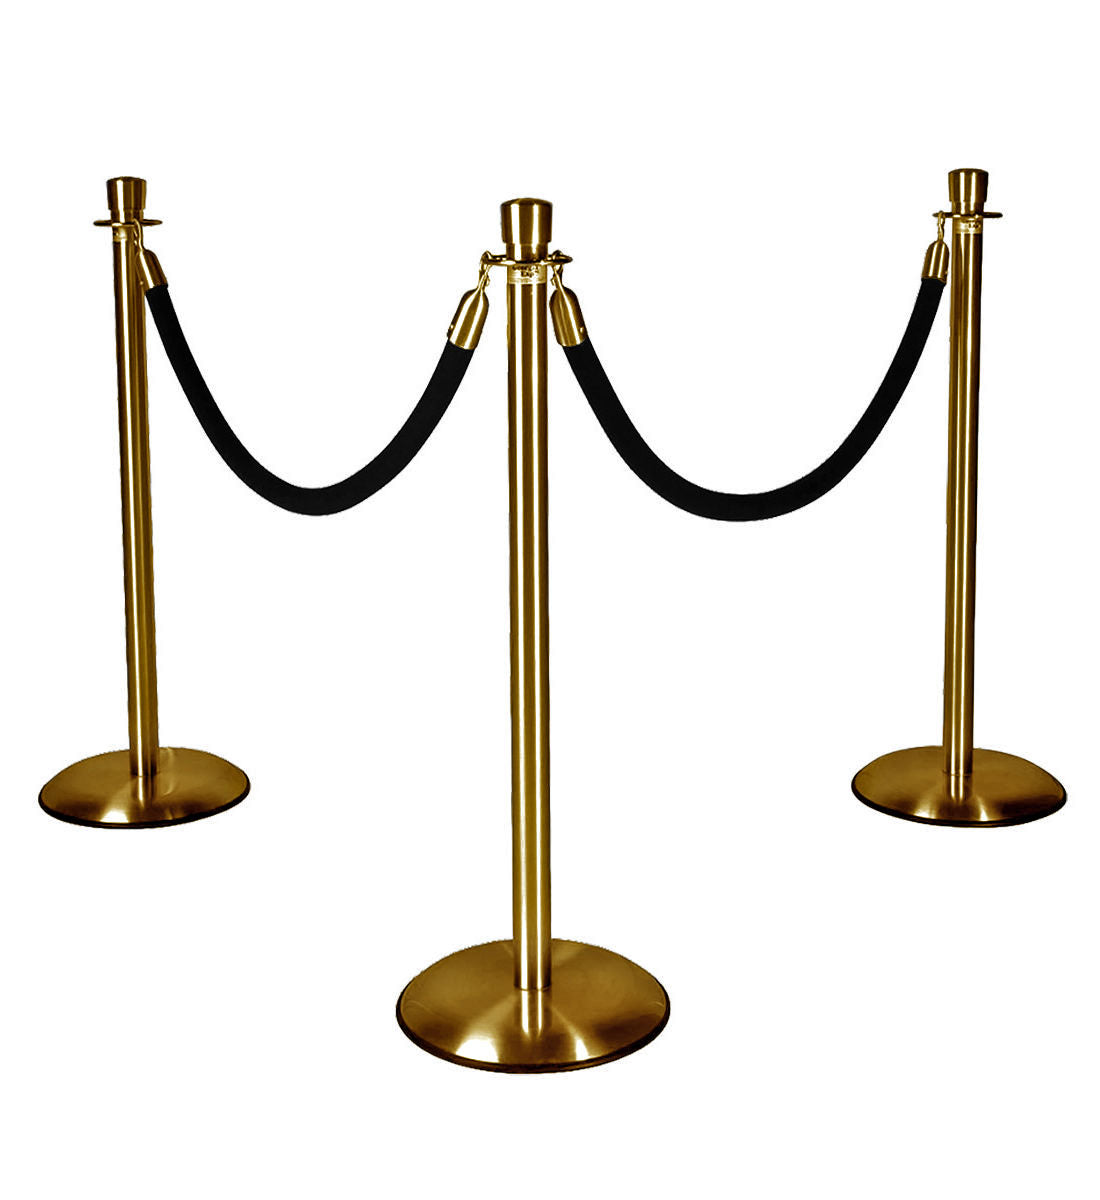 Gold Stanchions with Black Ropes